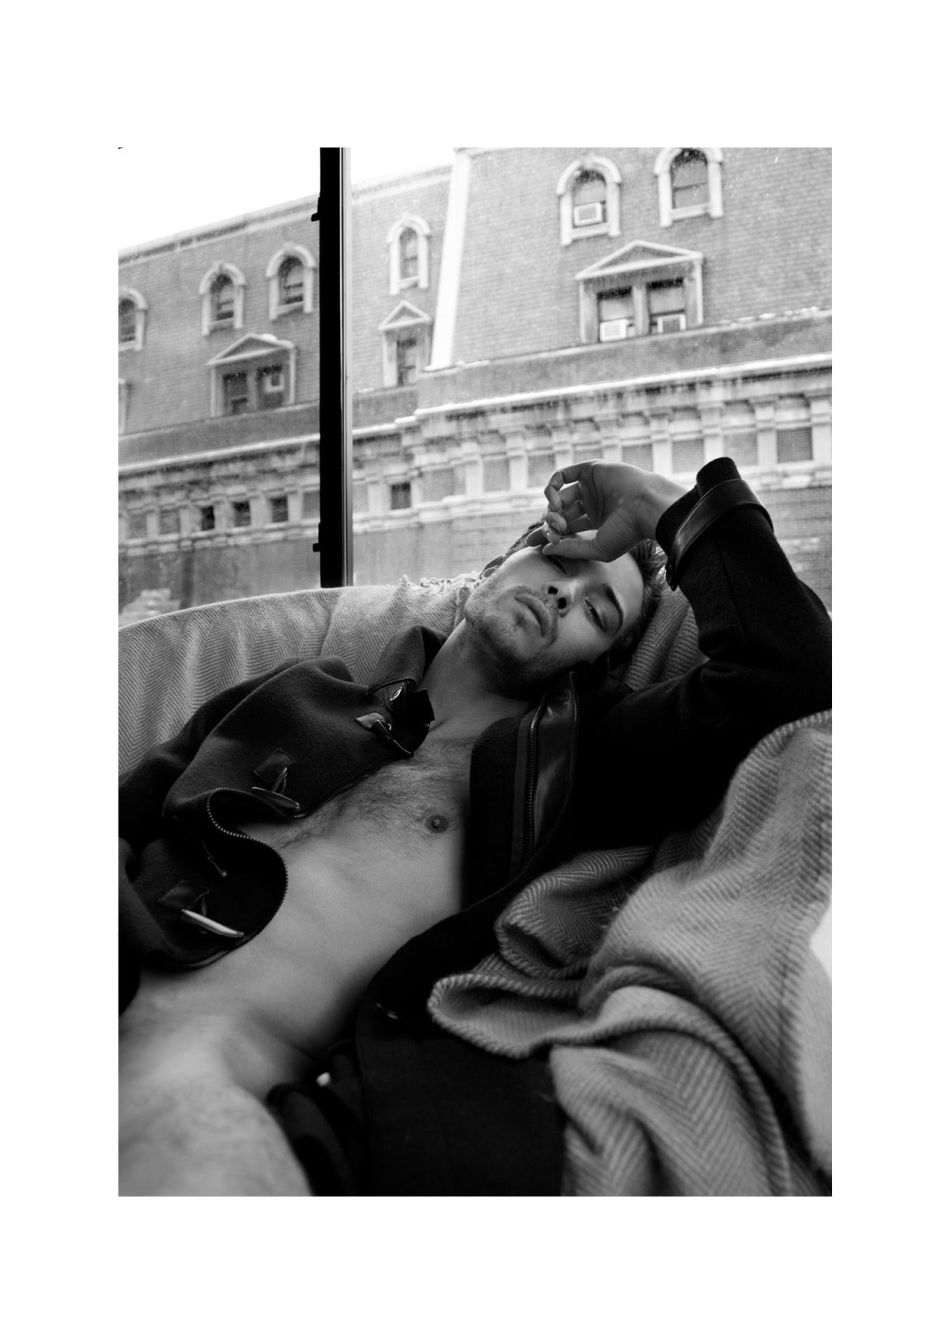 Francisco Lachowski by Karl Simone for Yearbook Fanzine6